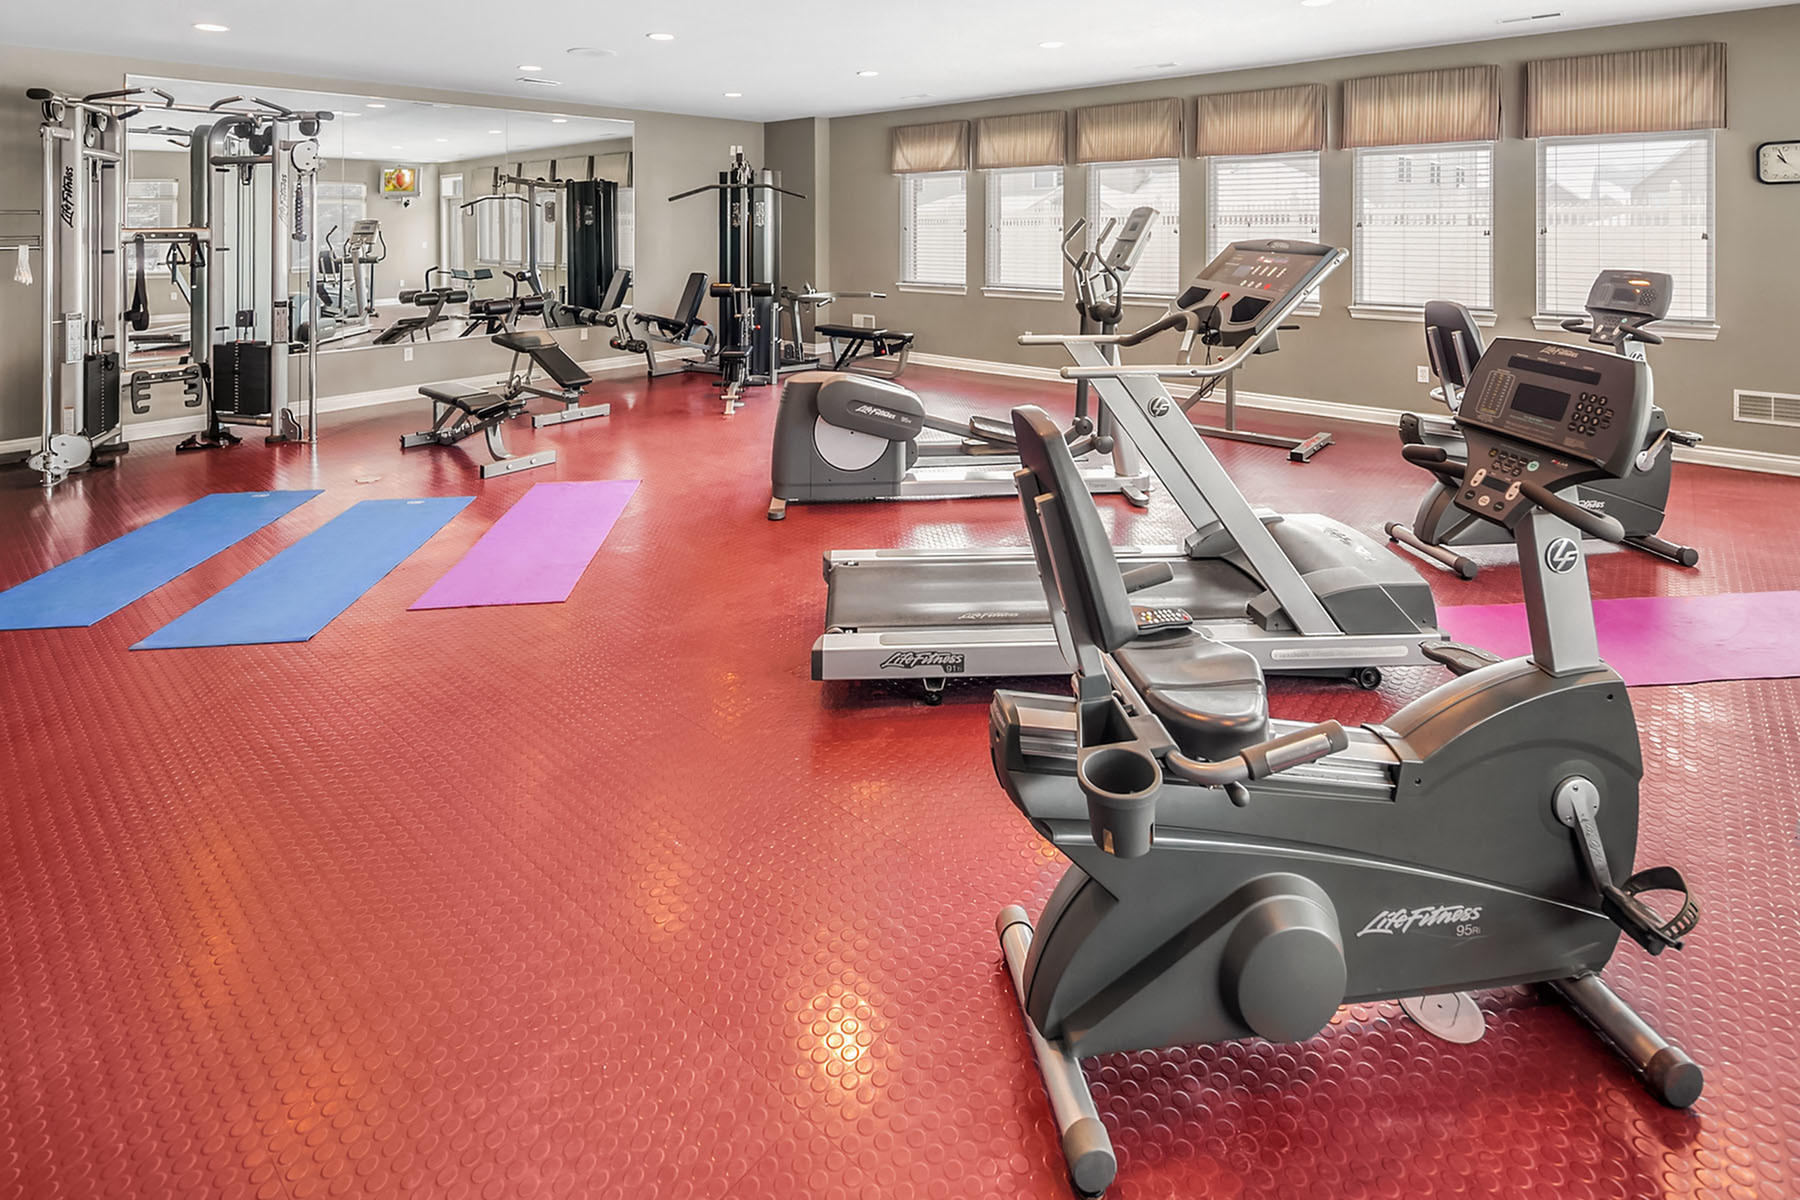 Image of 24 Hour Fitness Gym for Mallard Pond Apartments & Condos